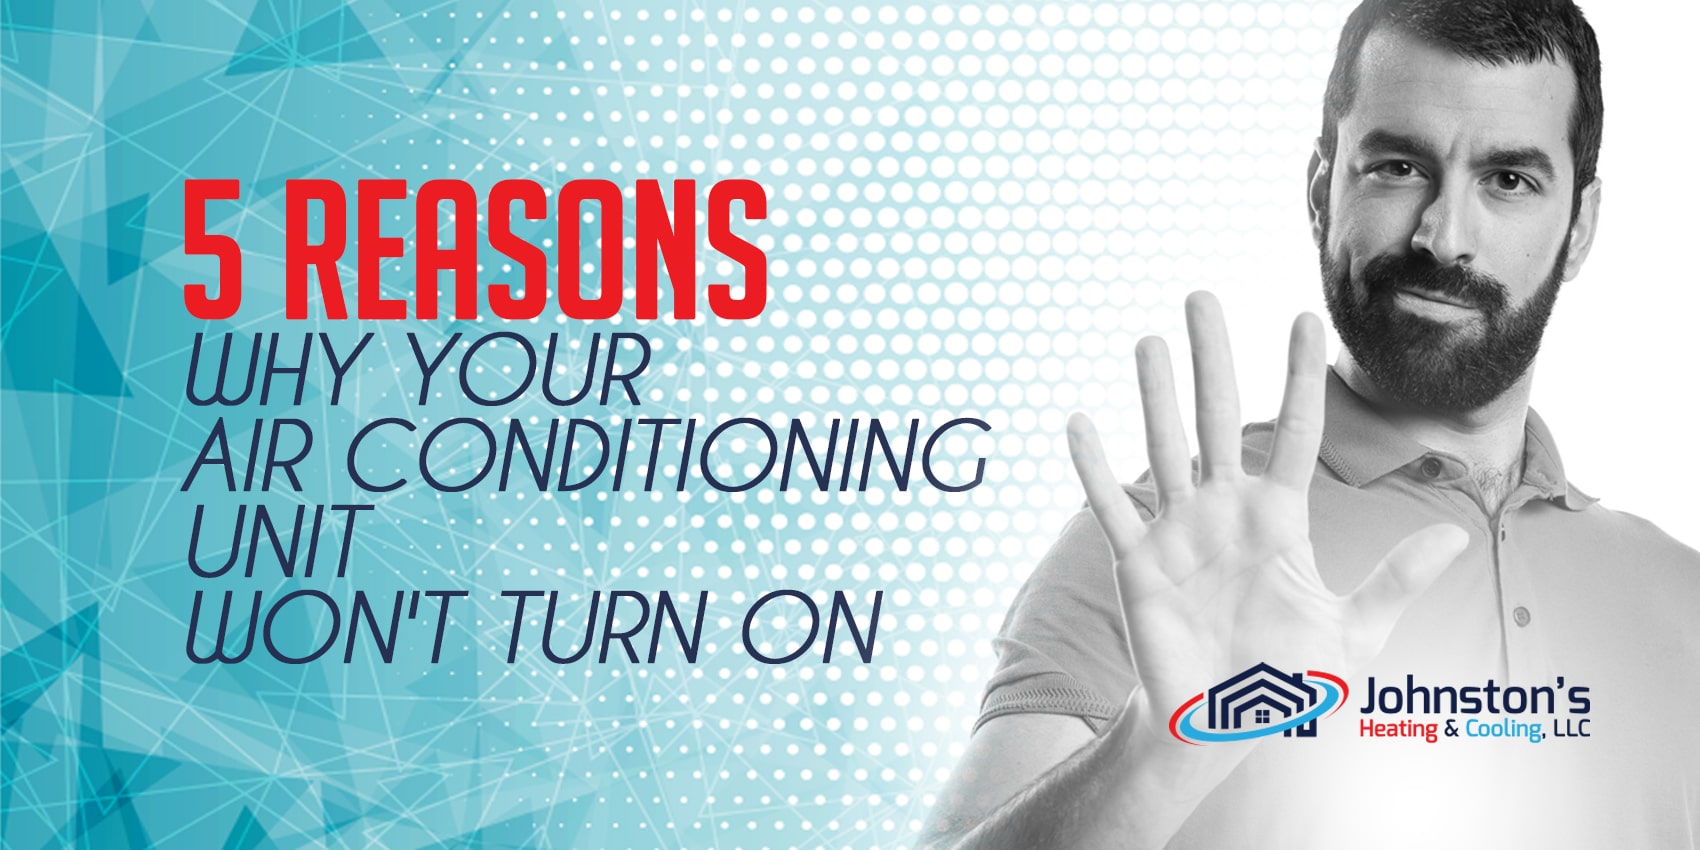 5 Reasons Why Your Air Conditioning Unit Won't Turn On